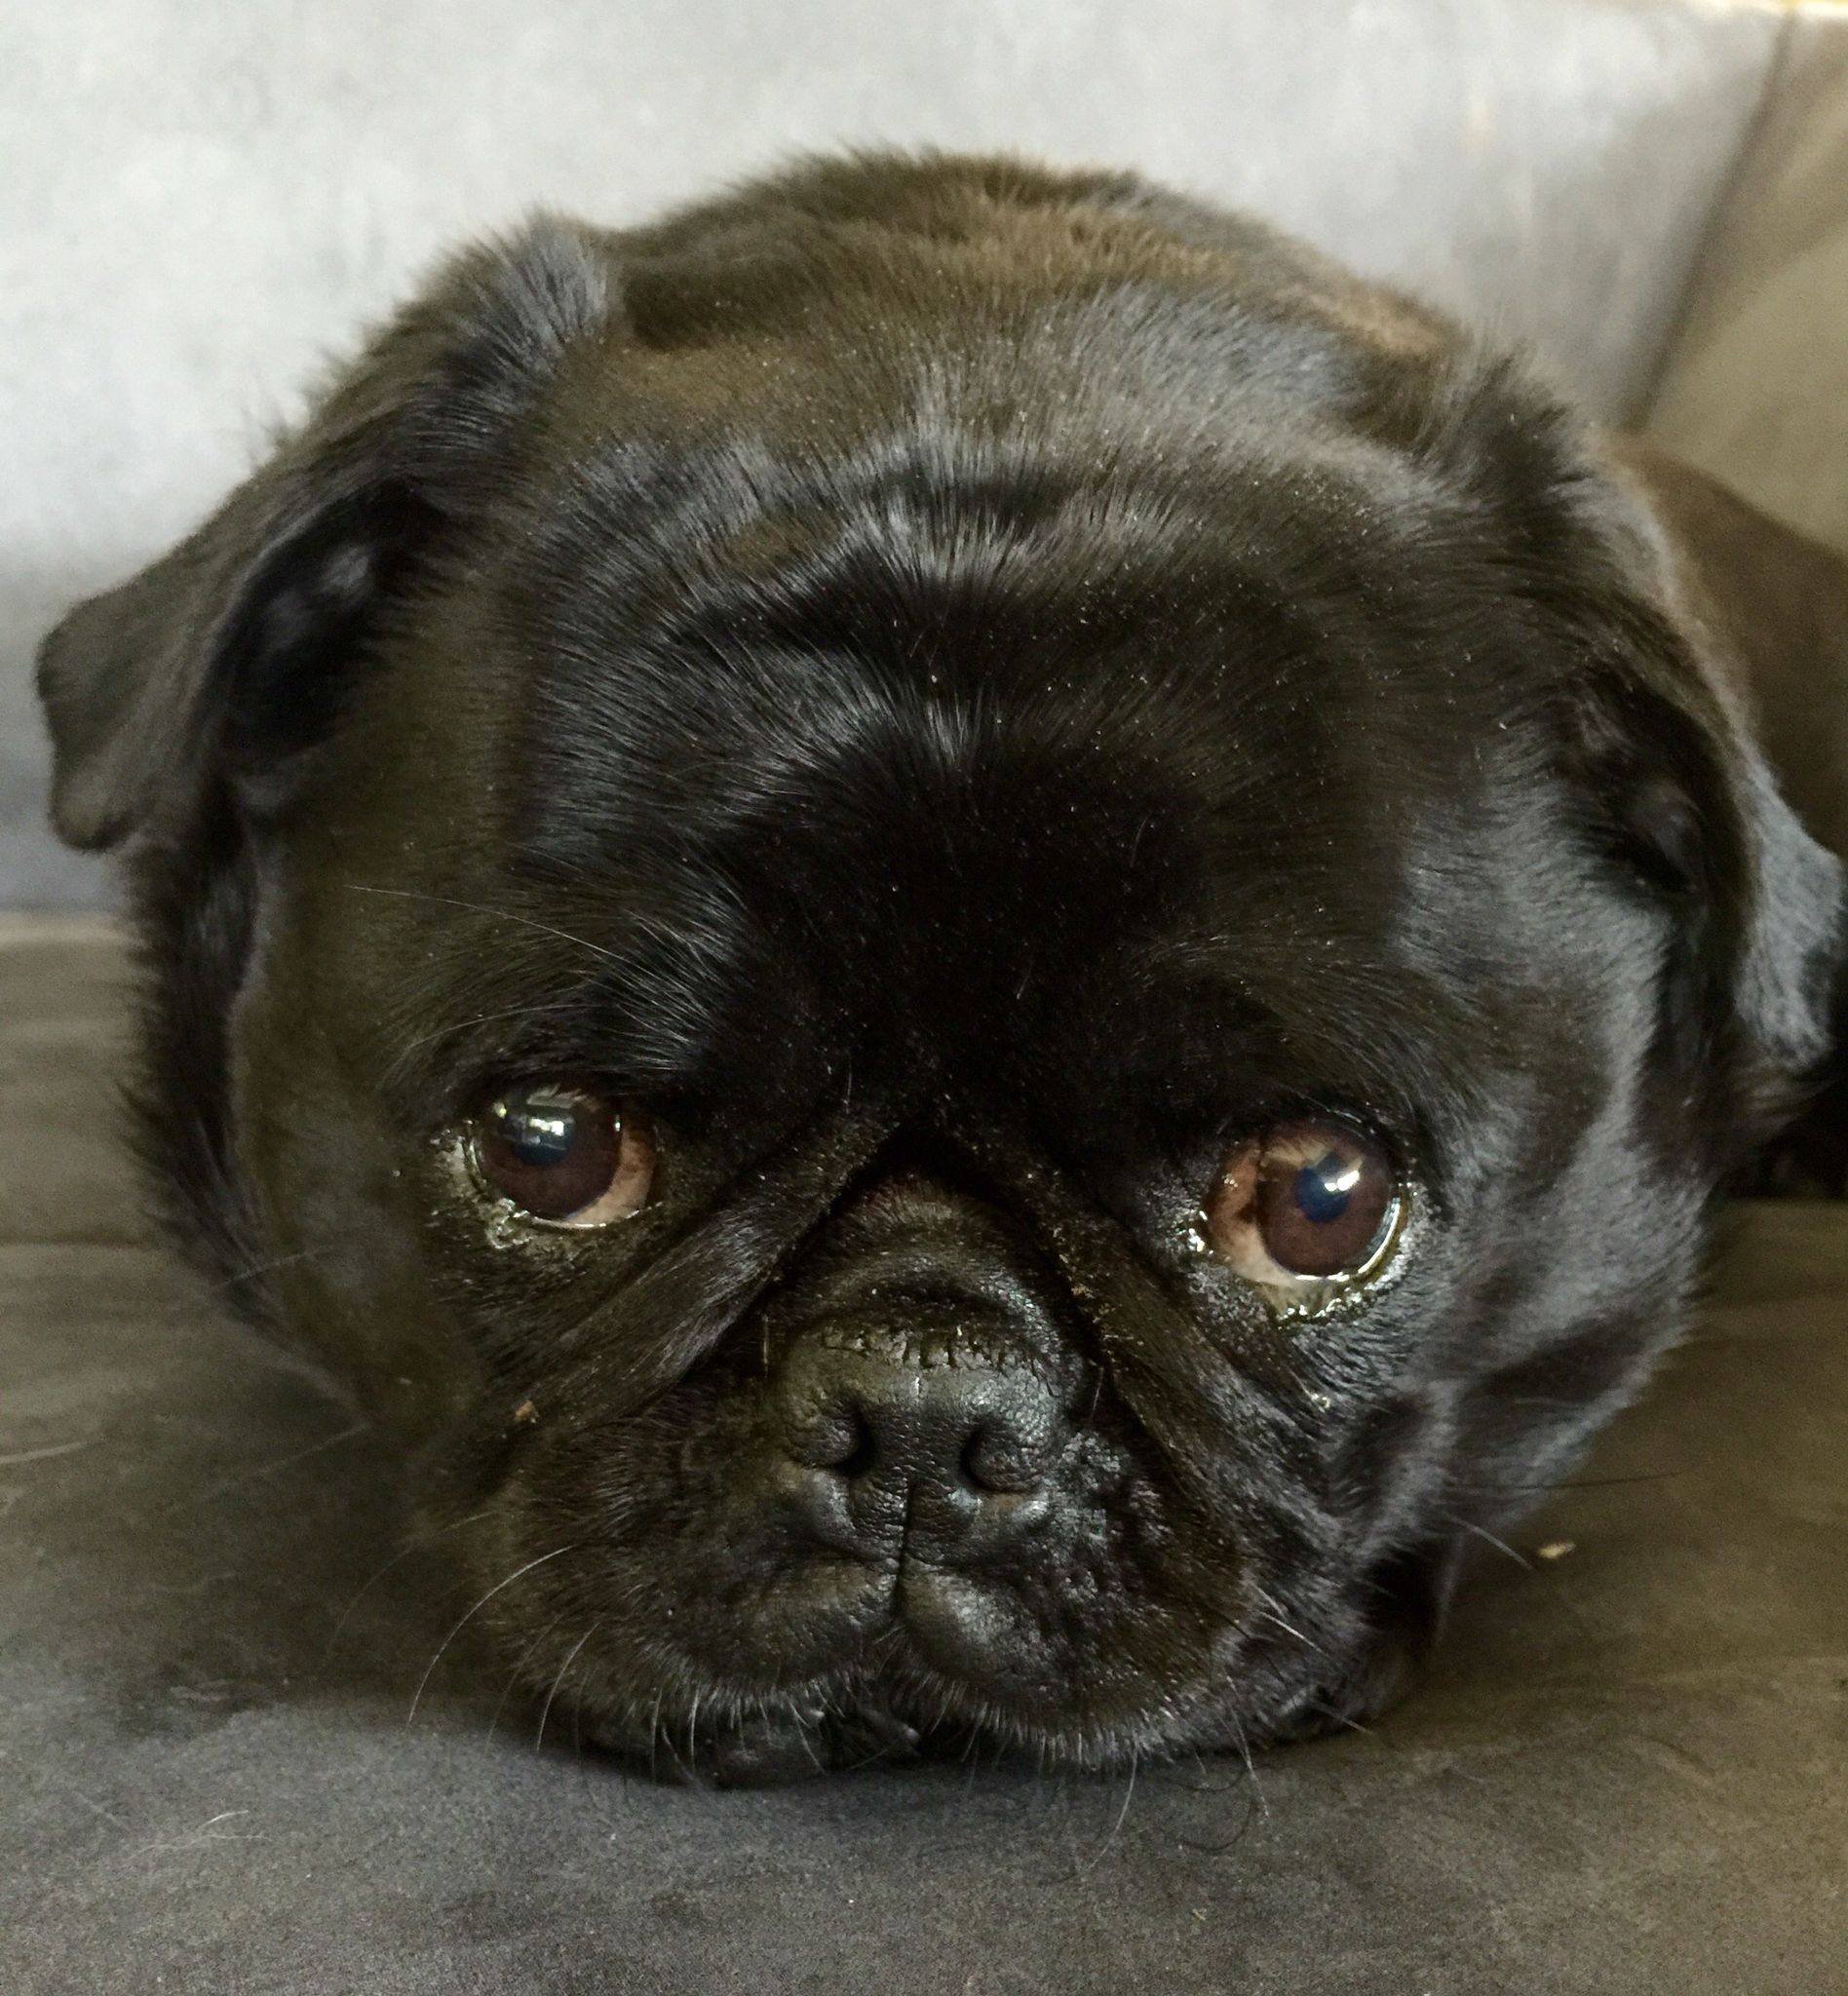 Cute Black Pug Close Up Sweet Face With Images Black Pug